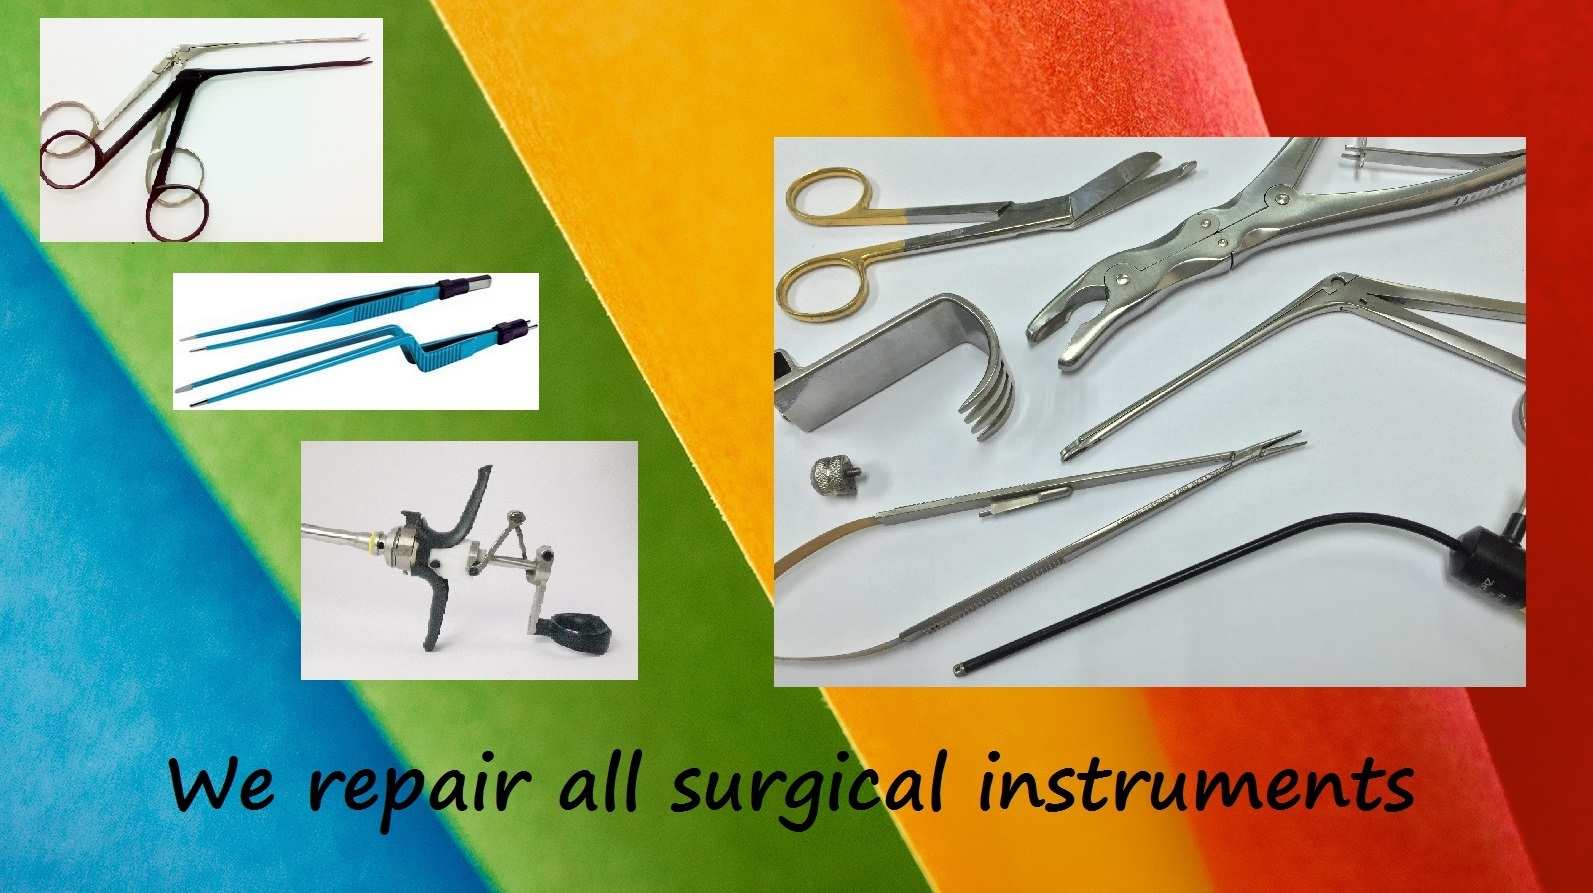 Surgical-Instruments-Rainbow1